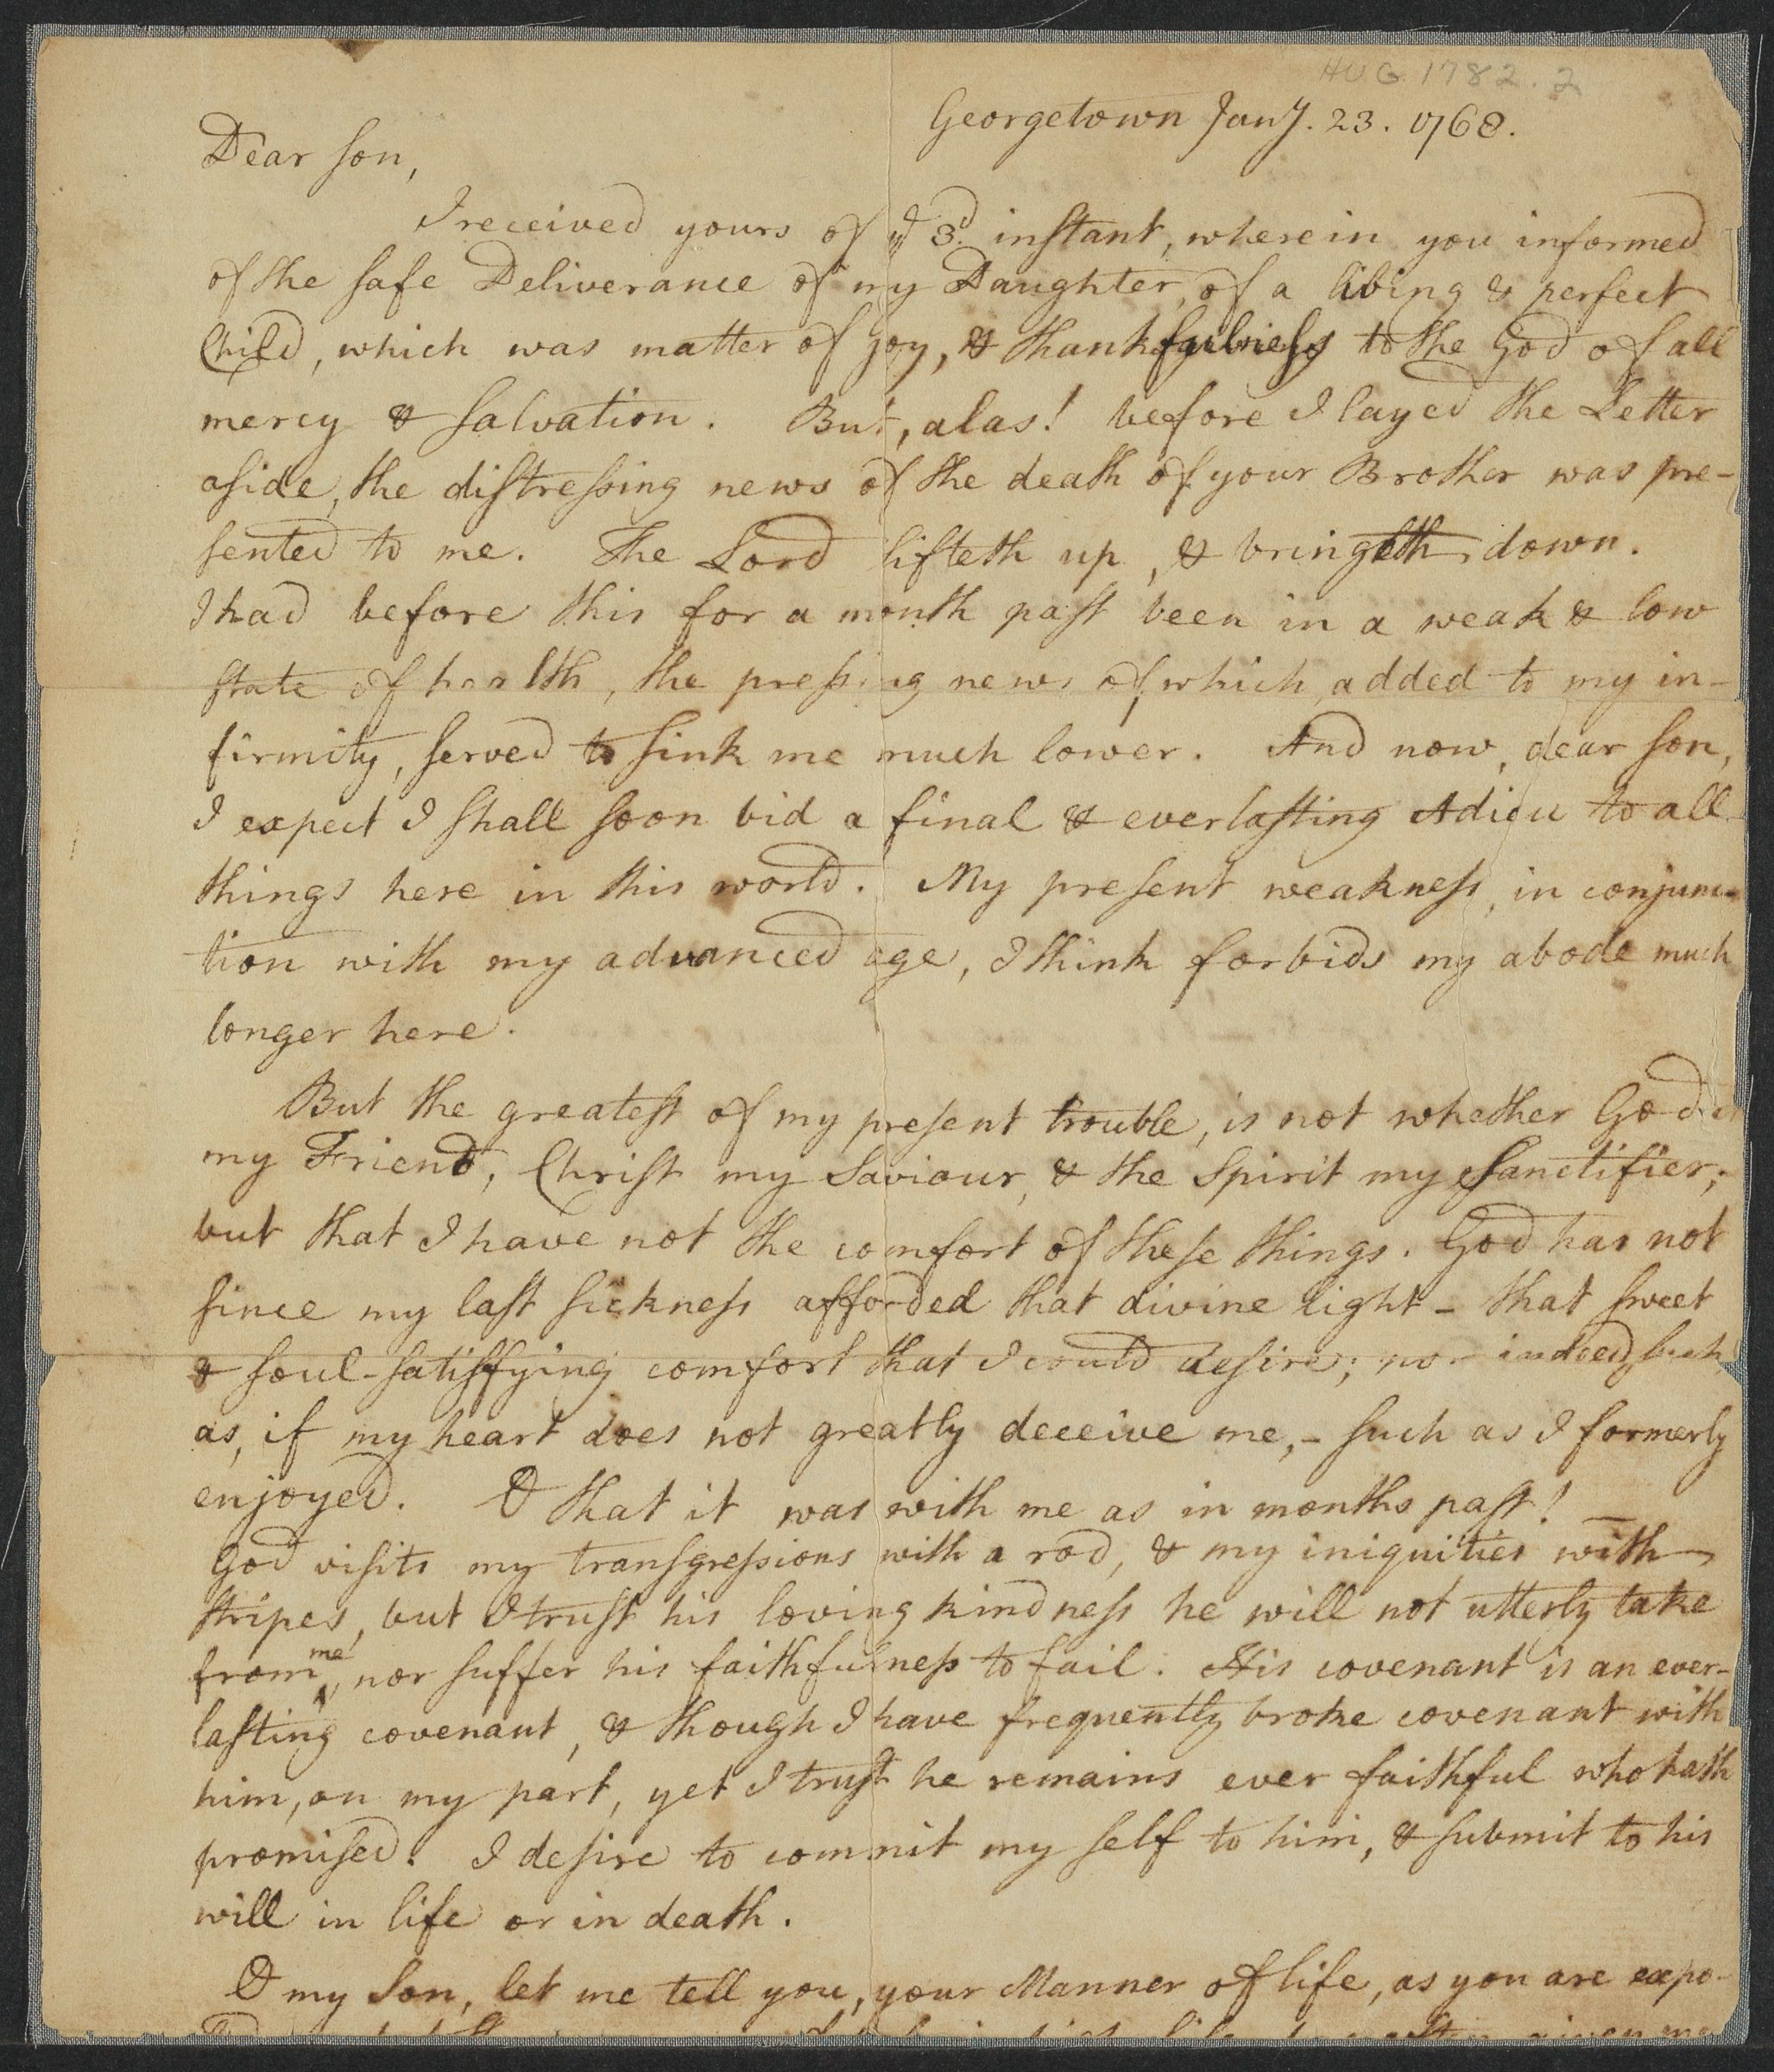 [Copy of a letter from Mehetabel Preble to her son Stephen Sewall], 1768 January 23